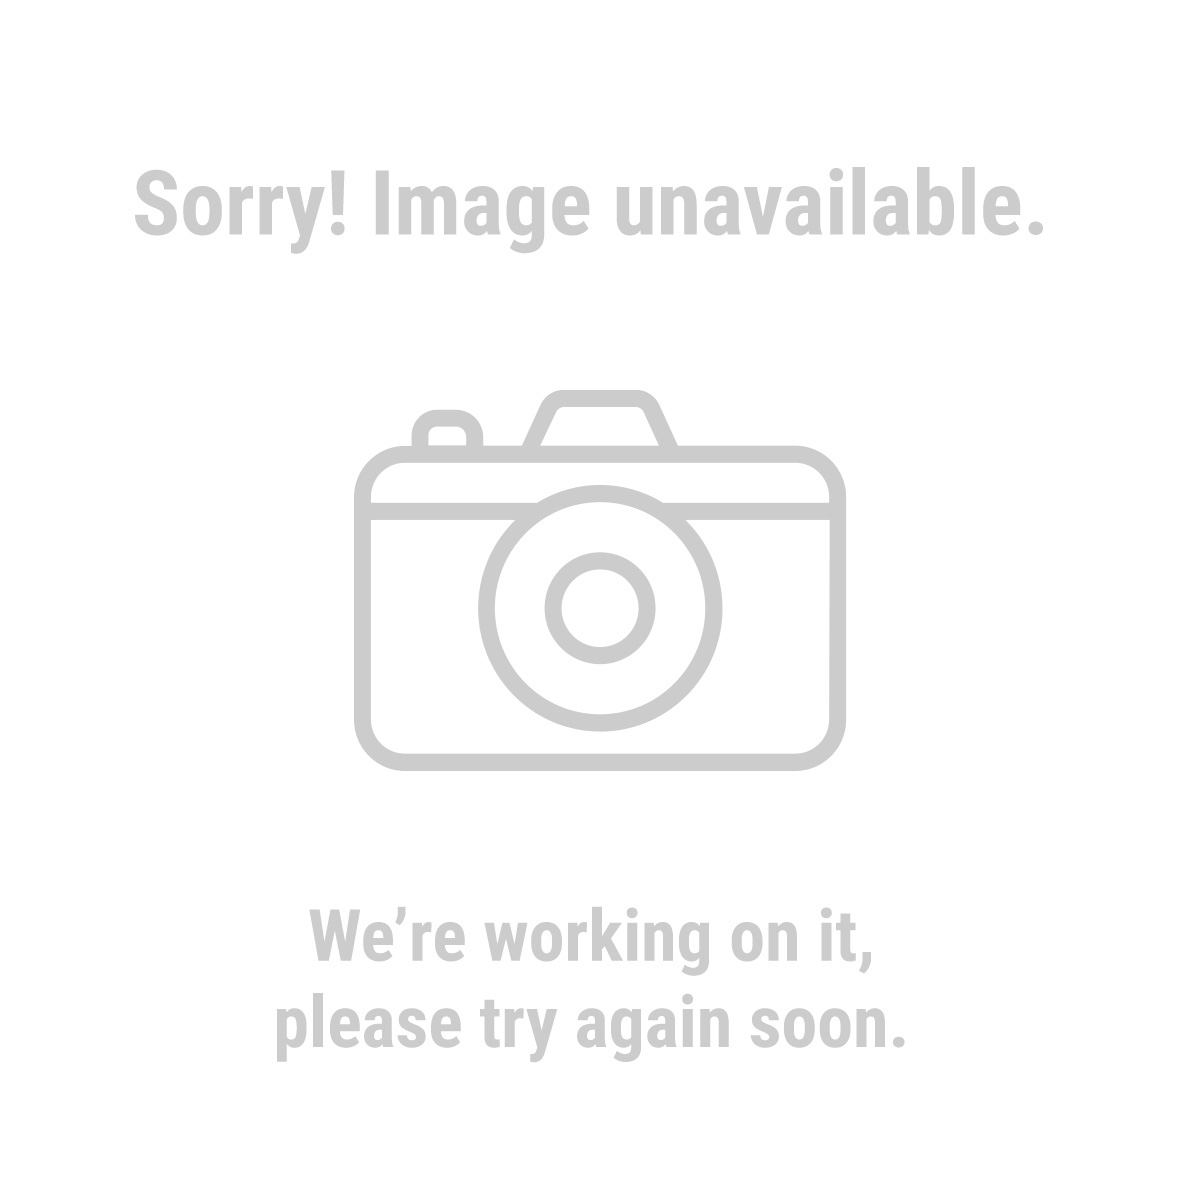 Chicago Electric Welding 46092 Adjustable Shade Auto-Darkening Welding Helmet